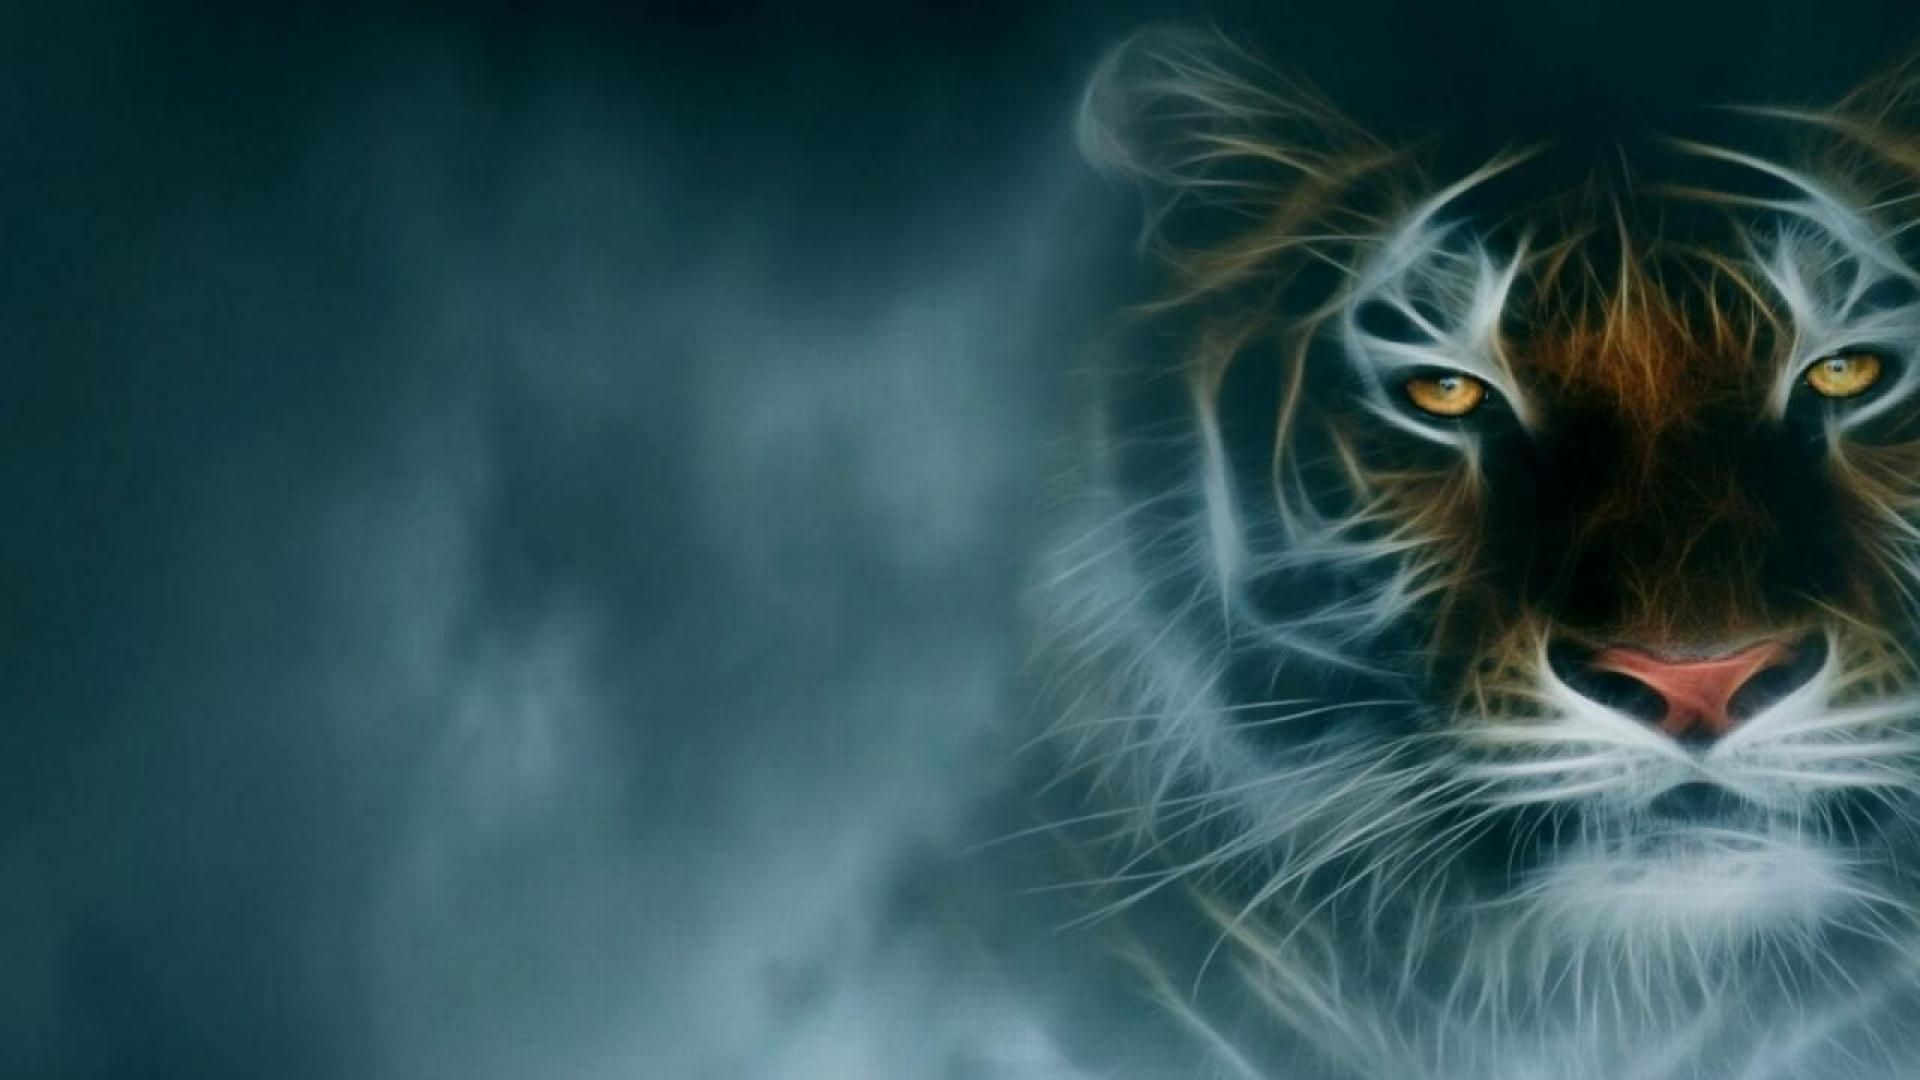 fractal tiger hd desktop background wallpaper free amazing fractal